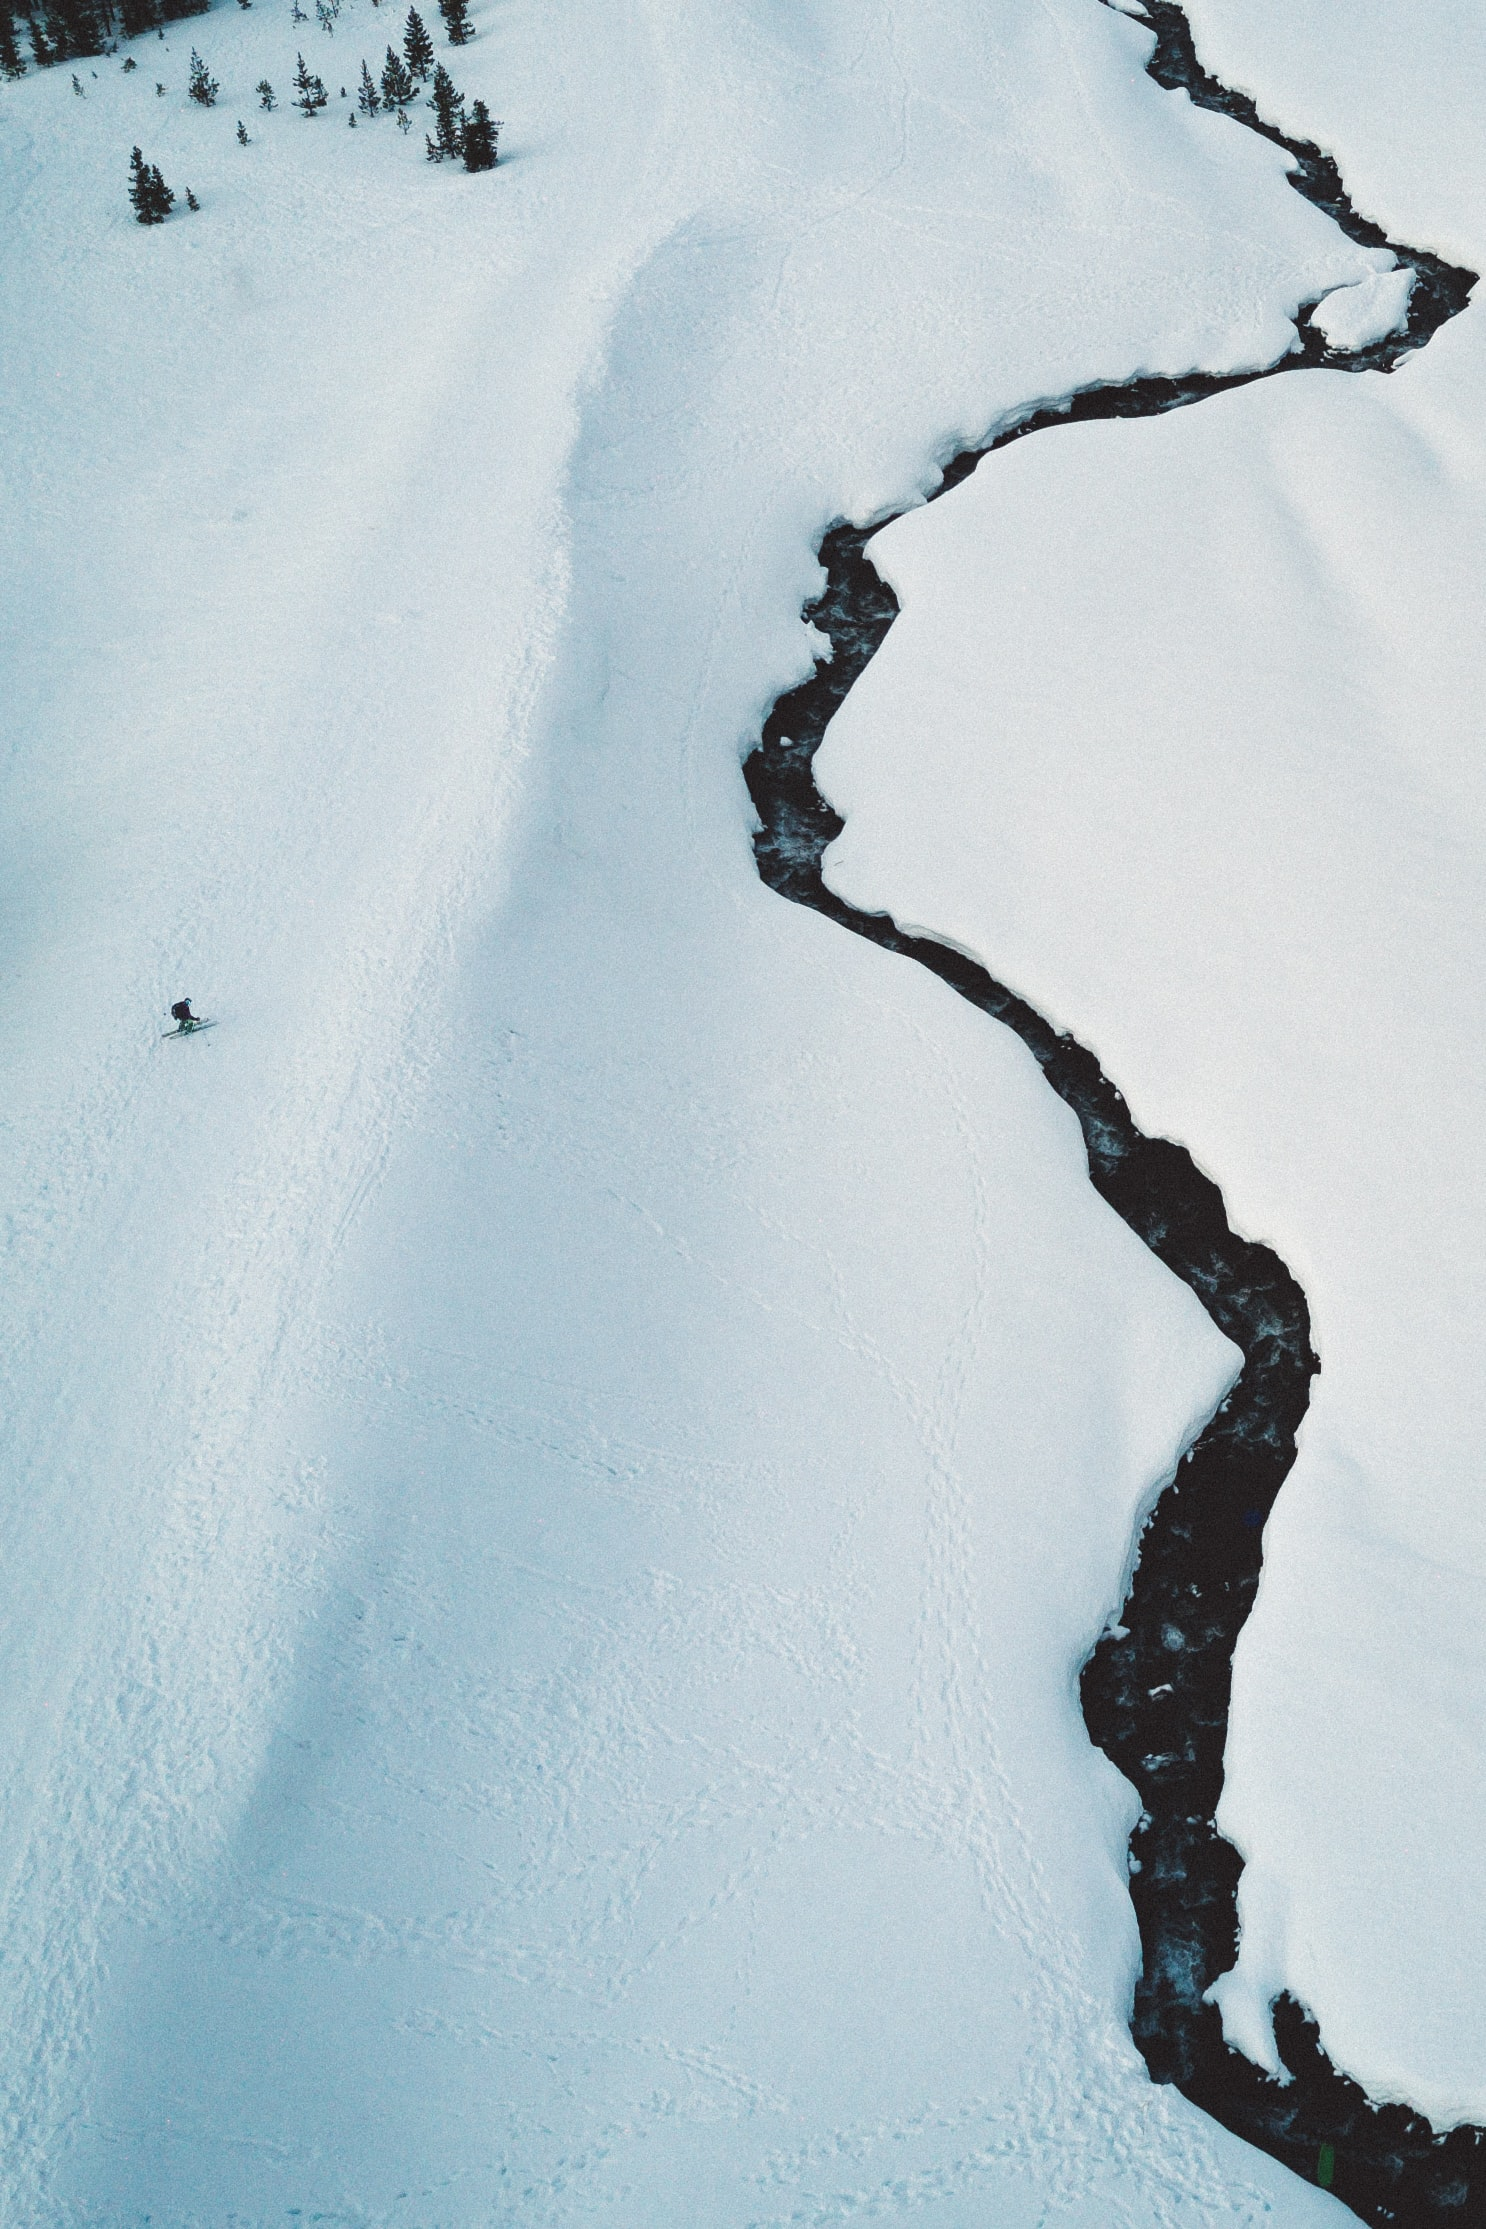 A drone shot of a small river flowing through snowy plains